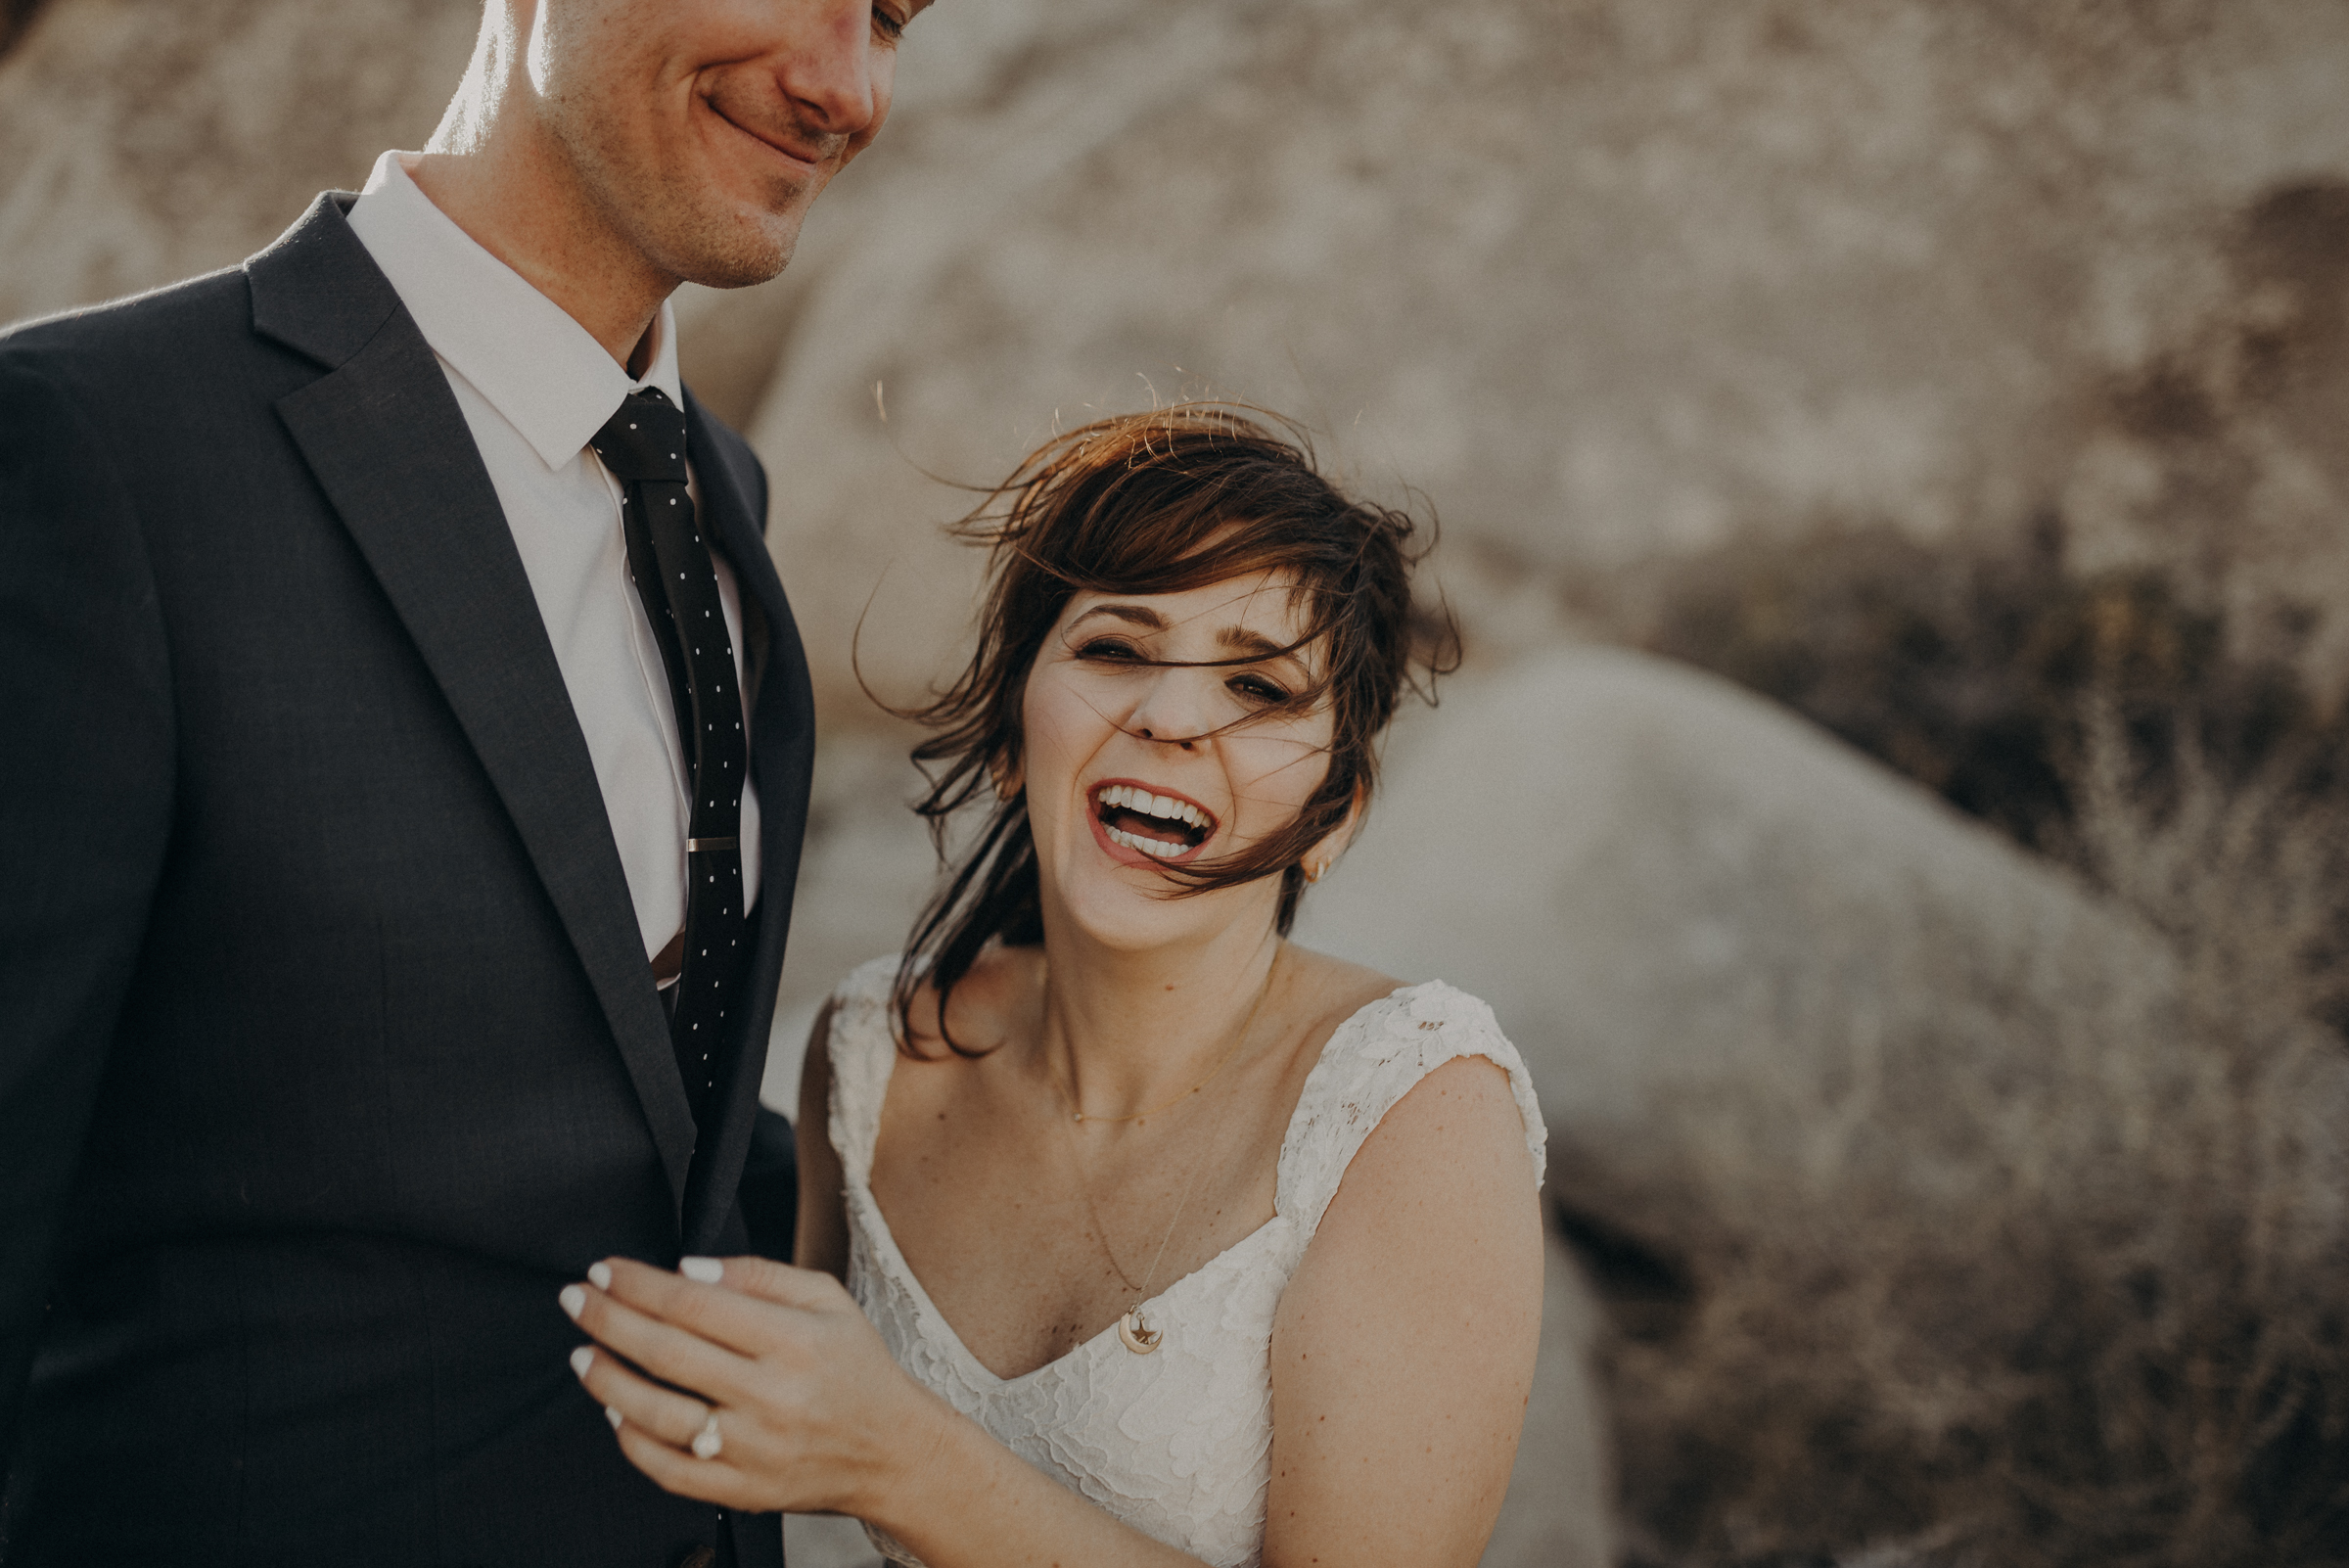 Joshua Tree Elopement - Los Angeles Wedding Photographers - IsaiahAndTaylor.com-054.jpg